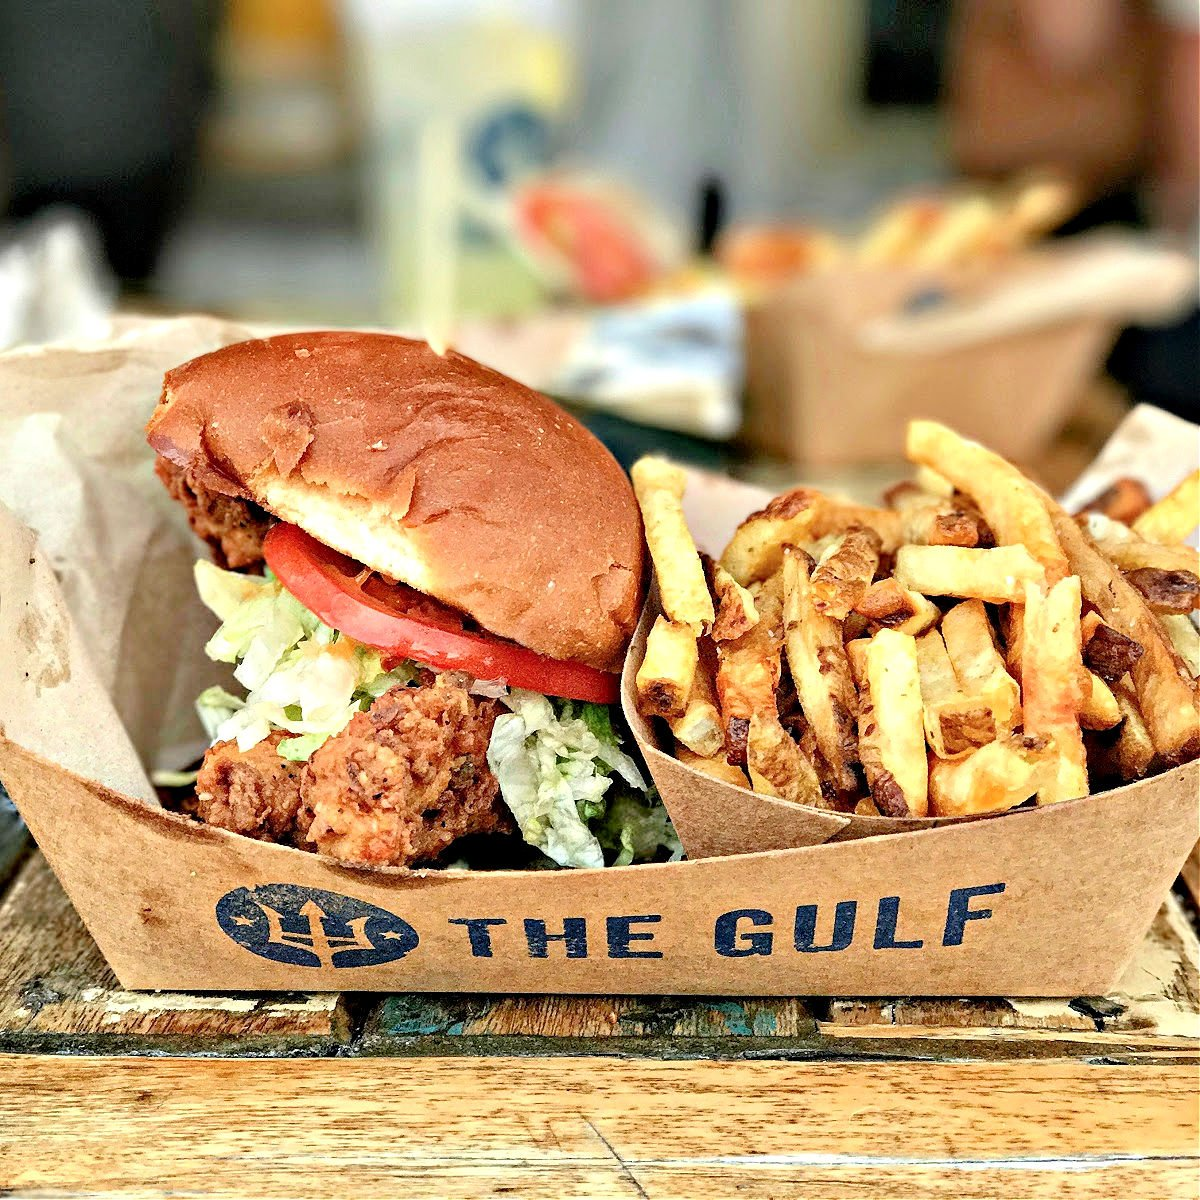 Fried fish sandwich with a side of French fries.